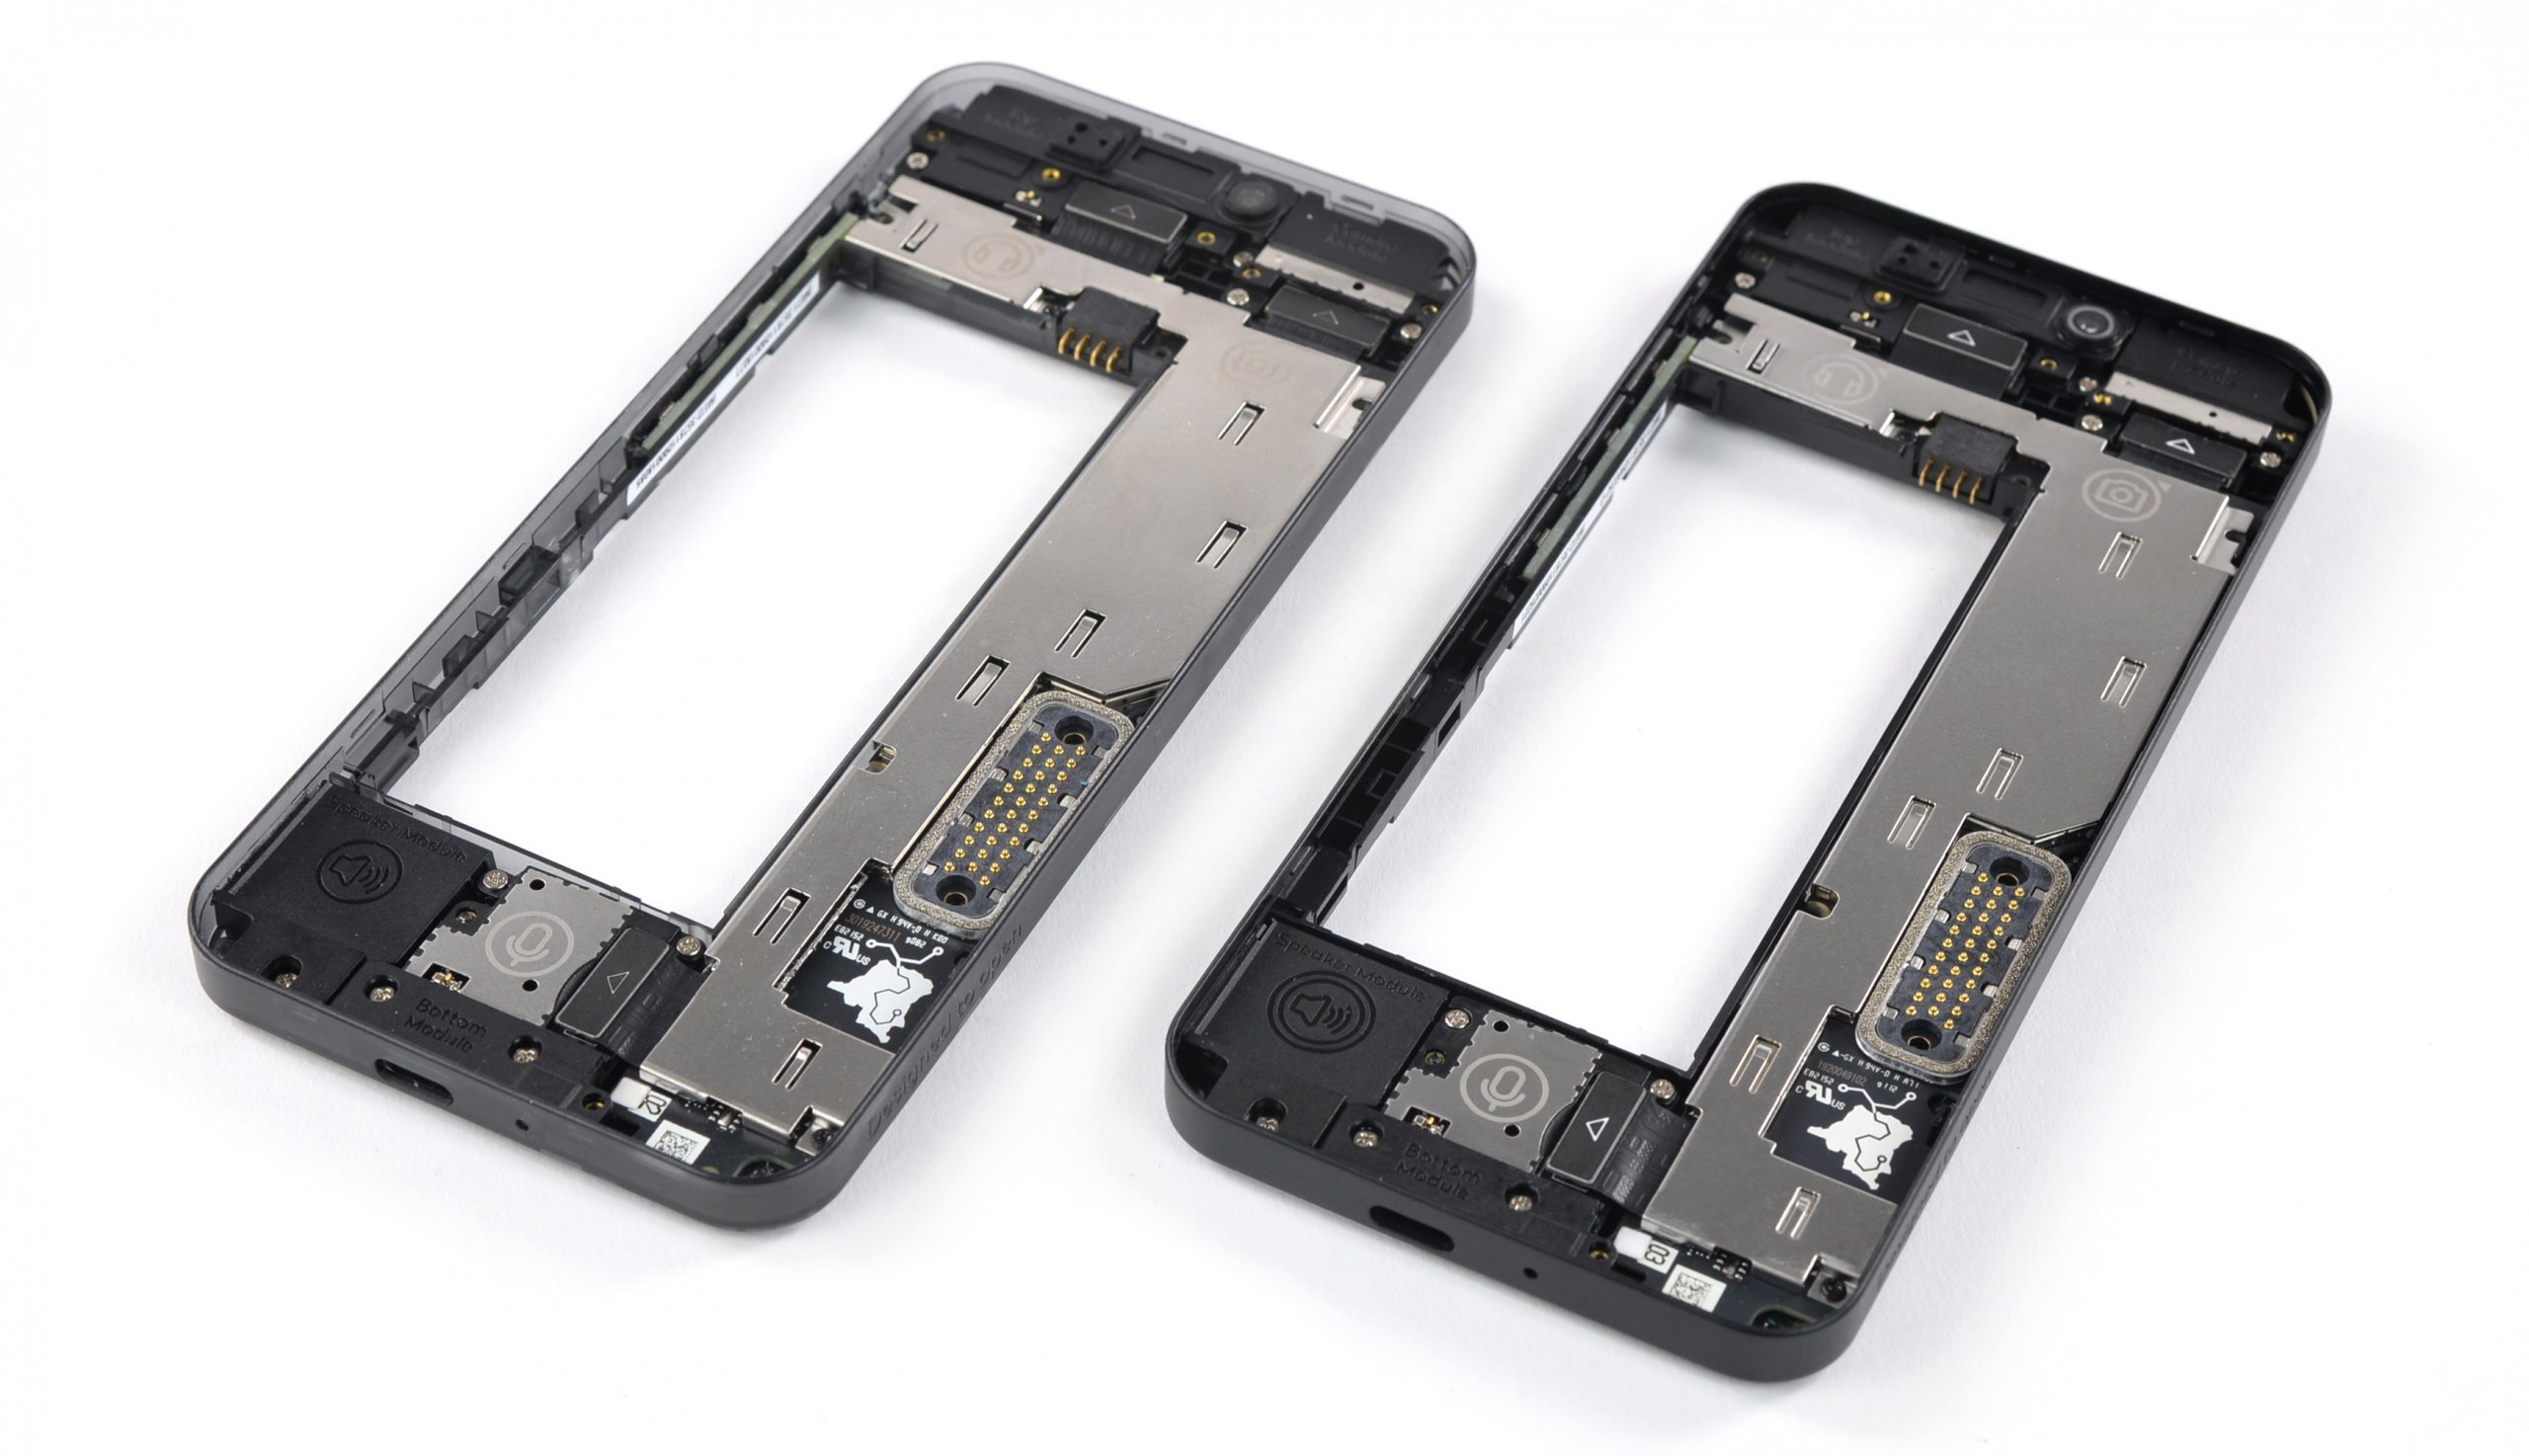 Fairphone 3+ and Fairphone 3 compared